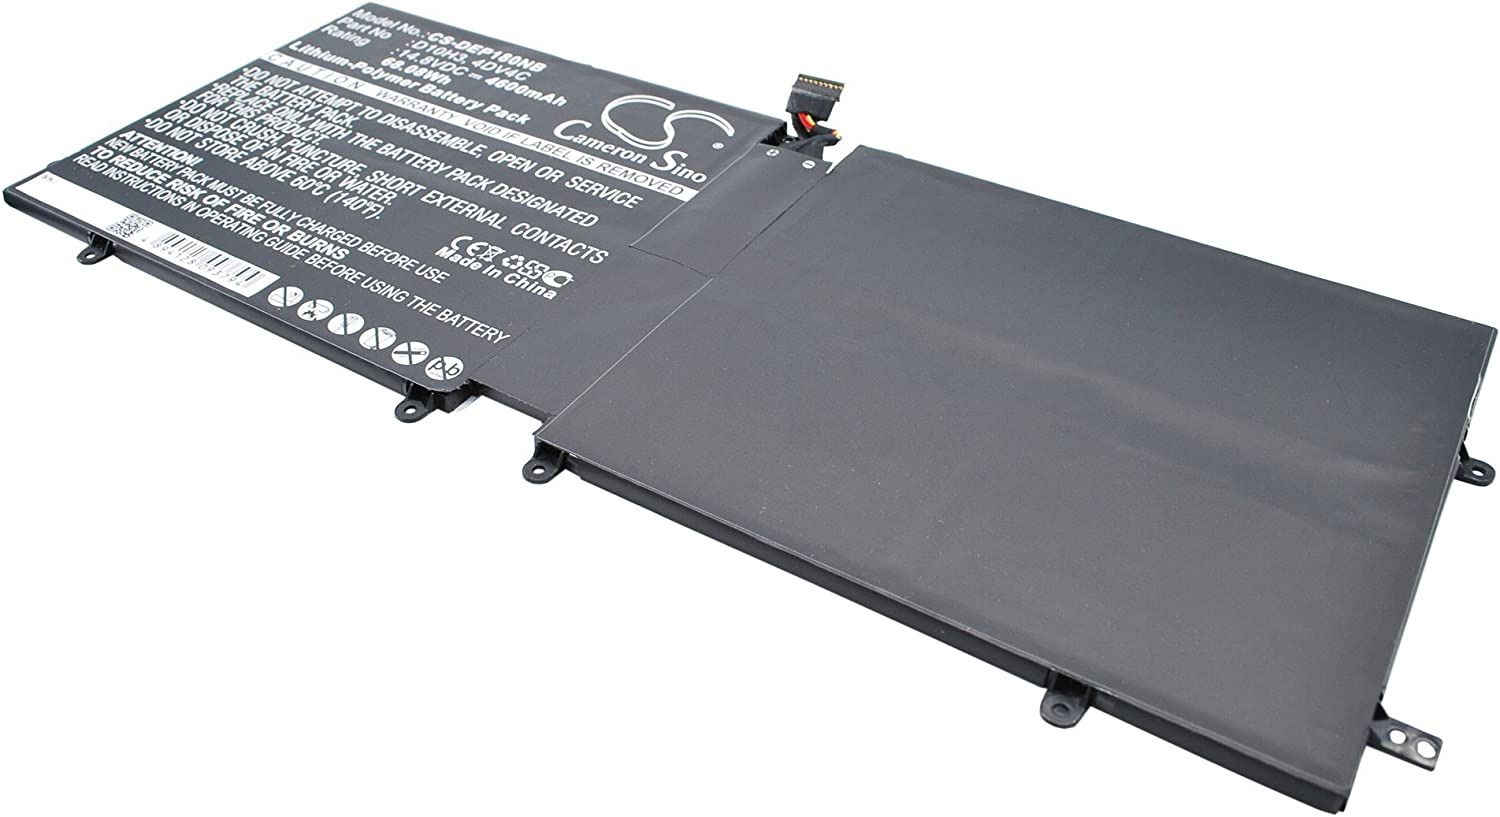 Rechargeable Battery for DELL XPS 18, XPS 18 1810, XPS 18 1820, XPS 18-1810 Replacement for DELL 4DV4C, 63FK6, D10H3